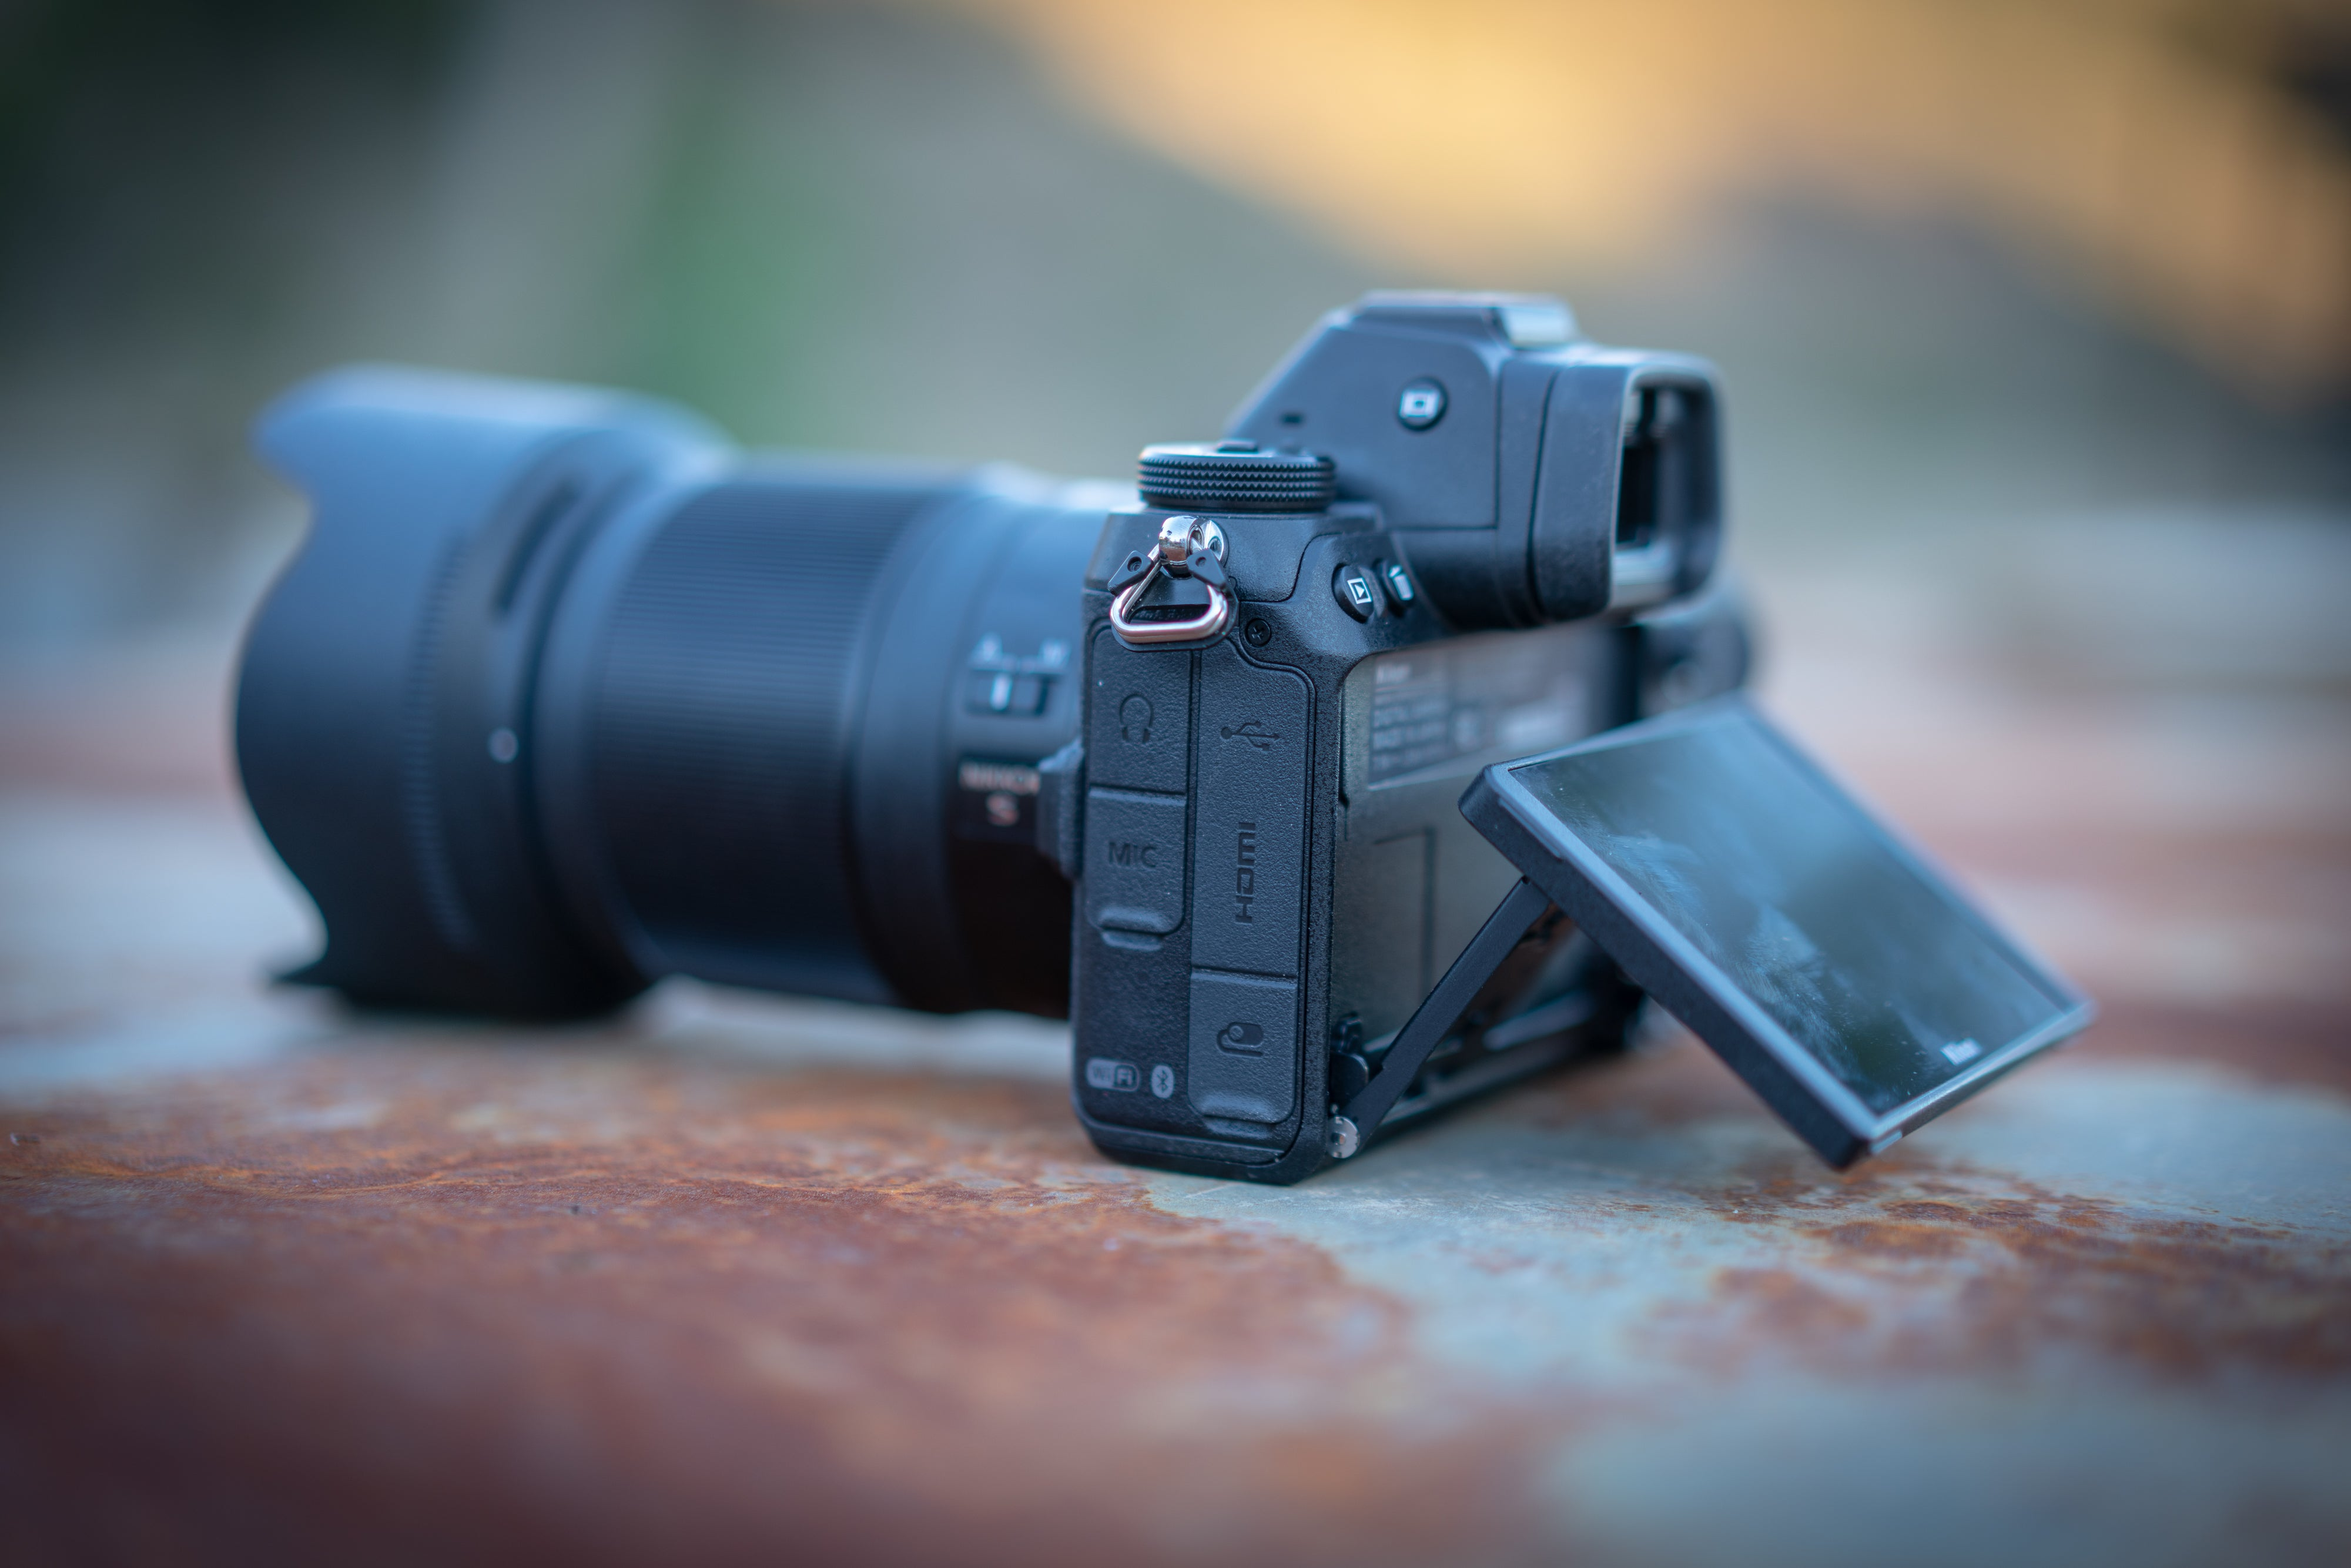 Nikon Z7 Review: A Worthy Mirrorless Contender, But Not A